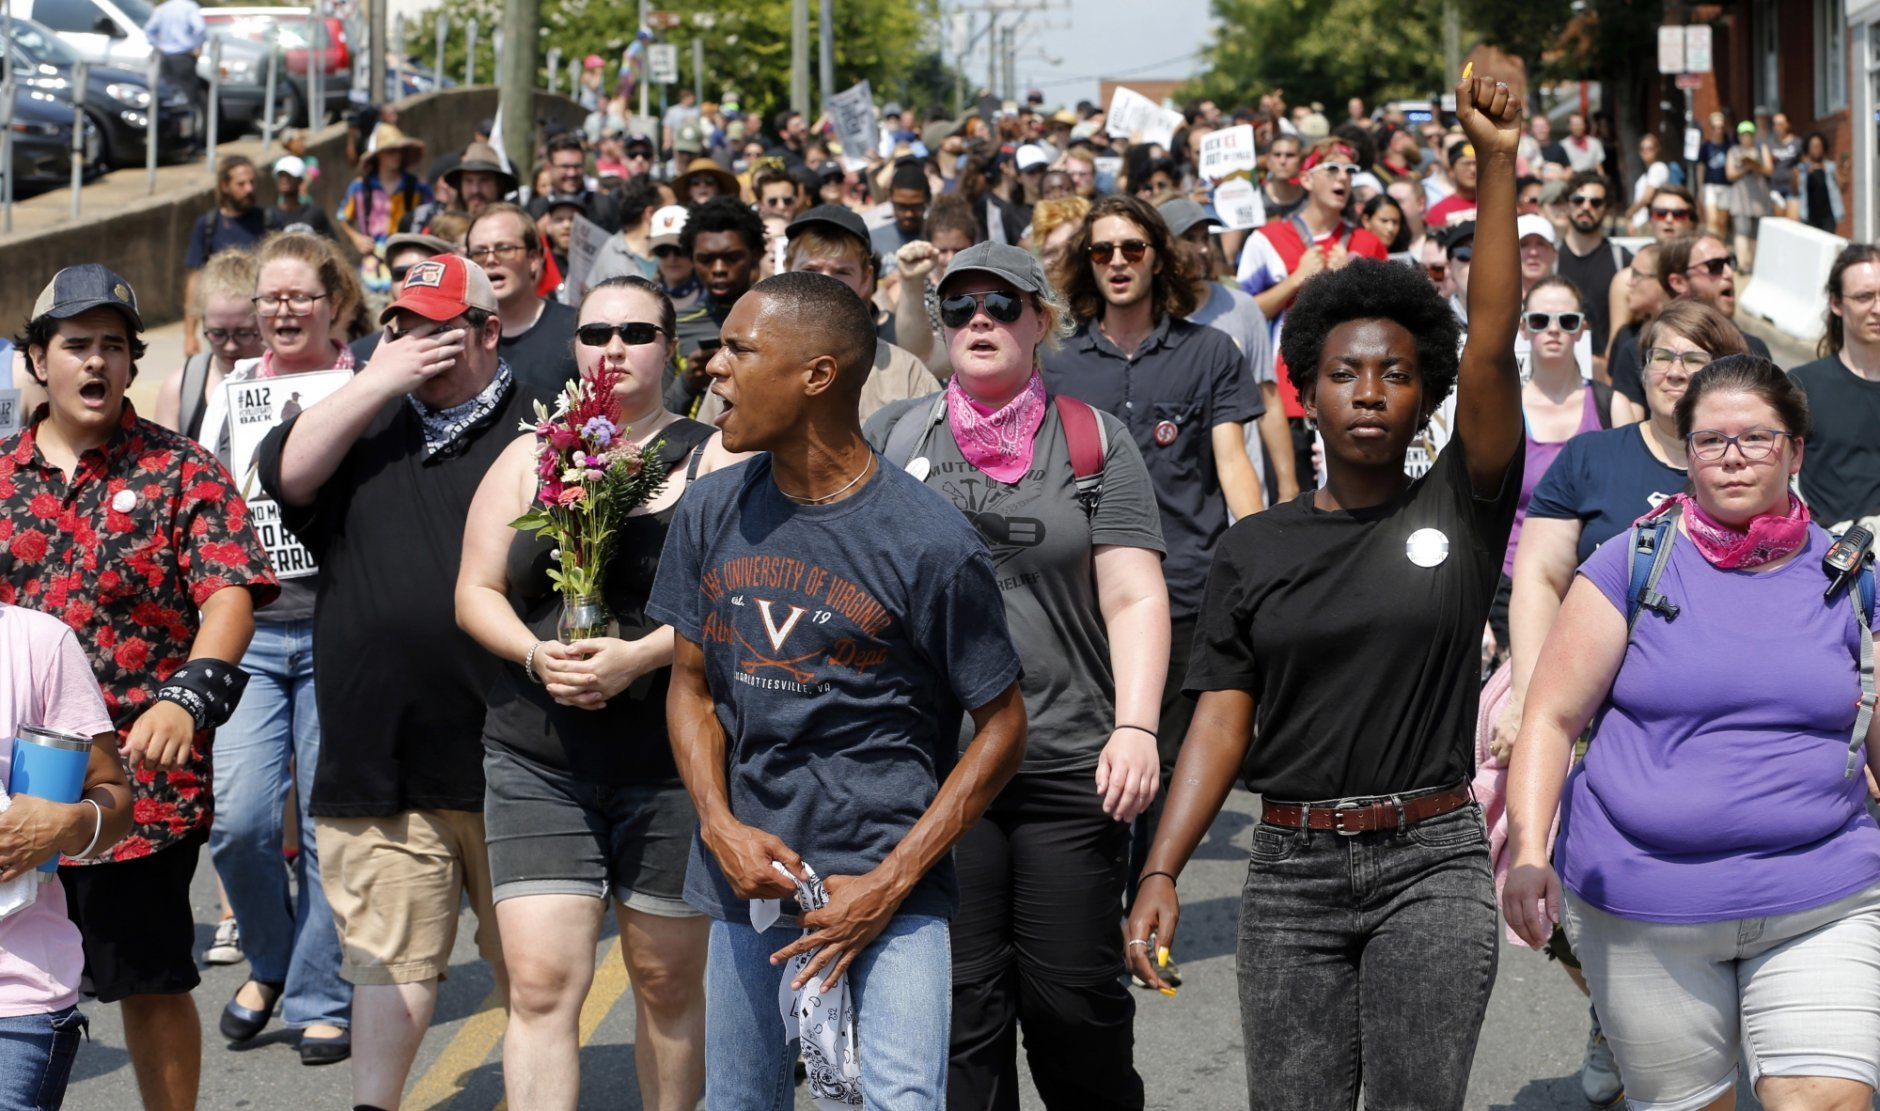 Demonstrators against racism march along city streets as they mark the anniversary of last year's Unite the Right rally in Charlottesville, Va., Sunday, Aug. 12, 2018. (AP Photo/Steve Helber)